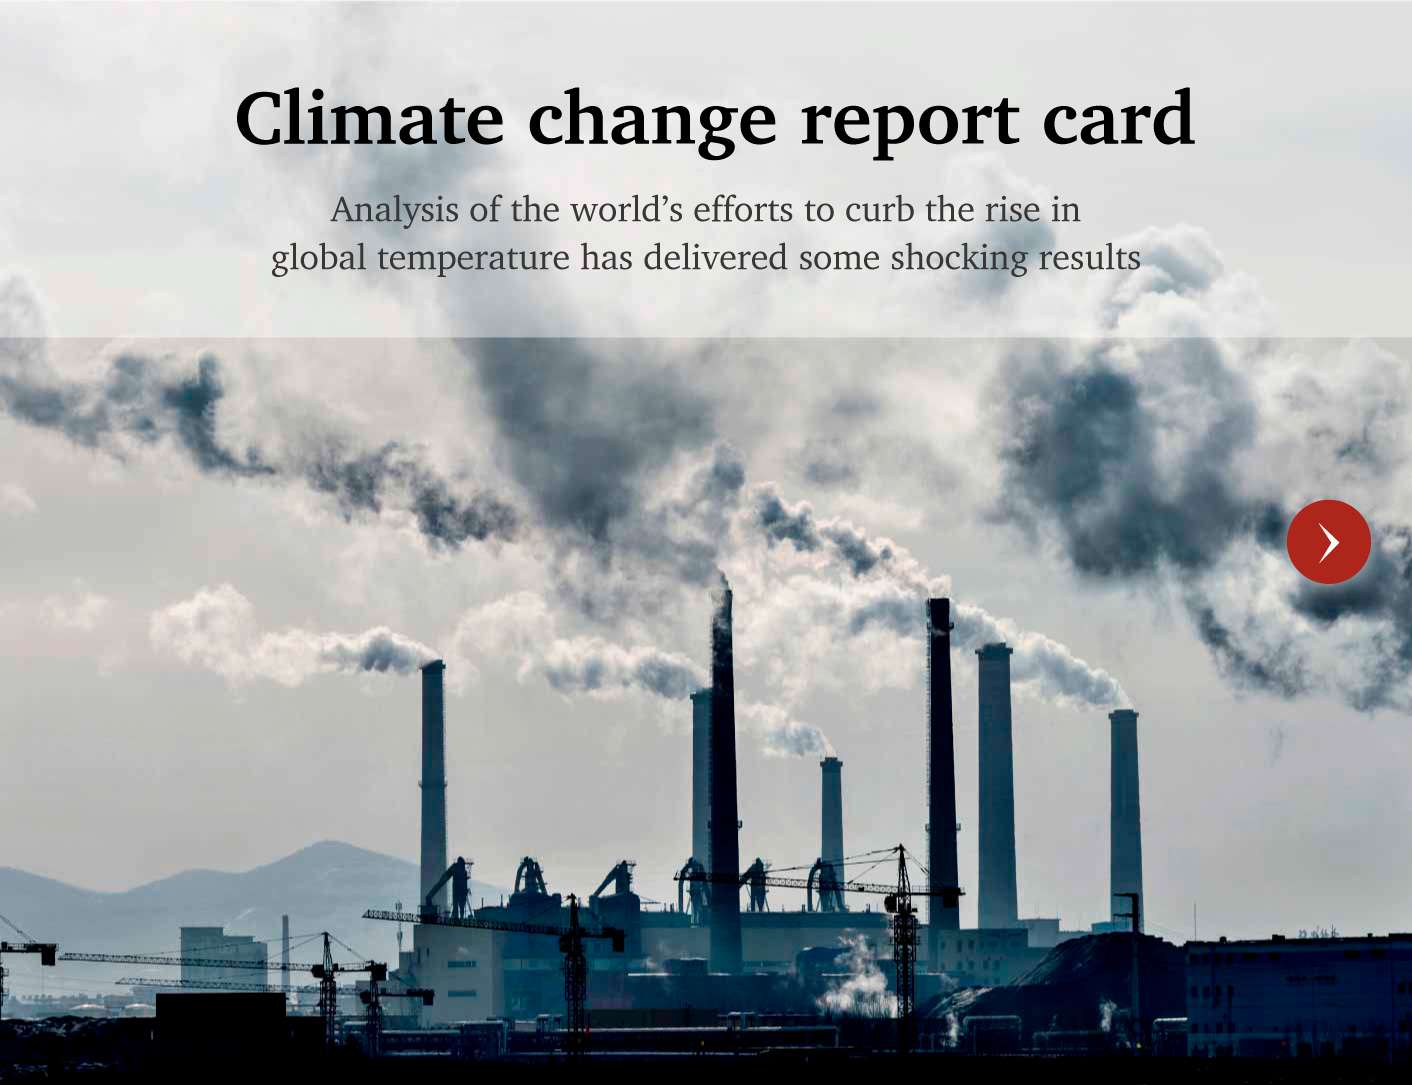 NED-2910-Climate-change-report-card - 0